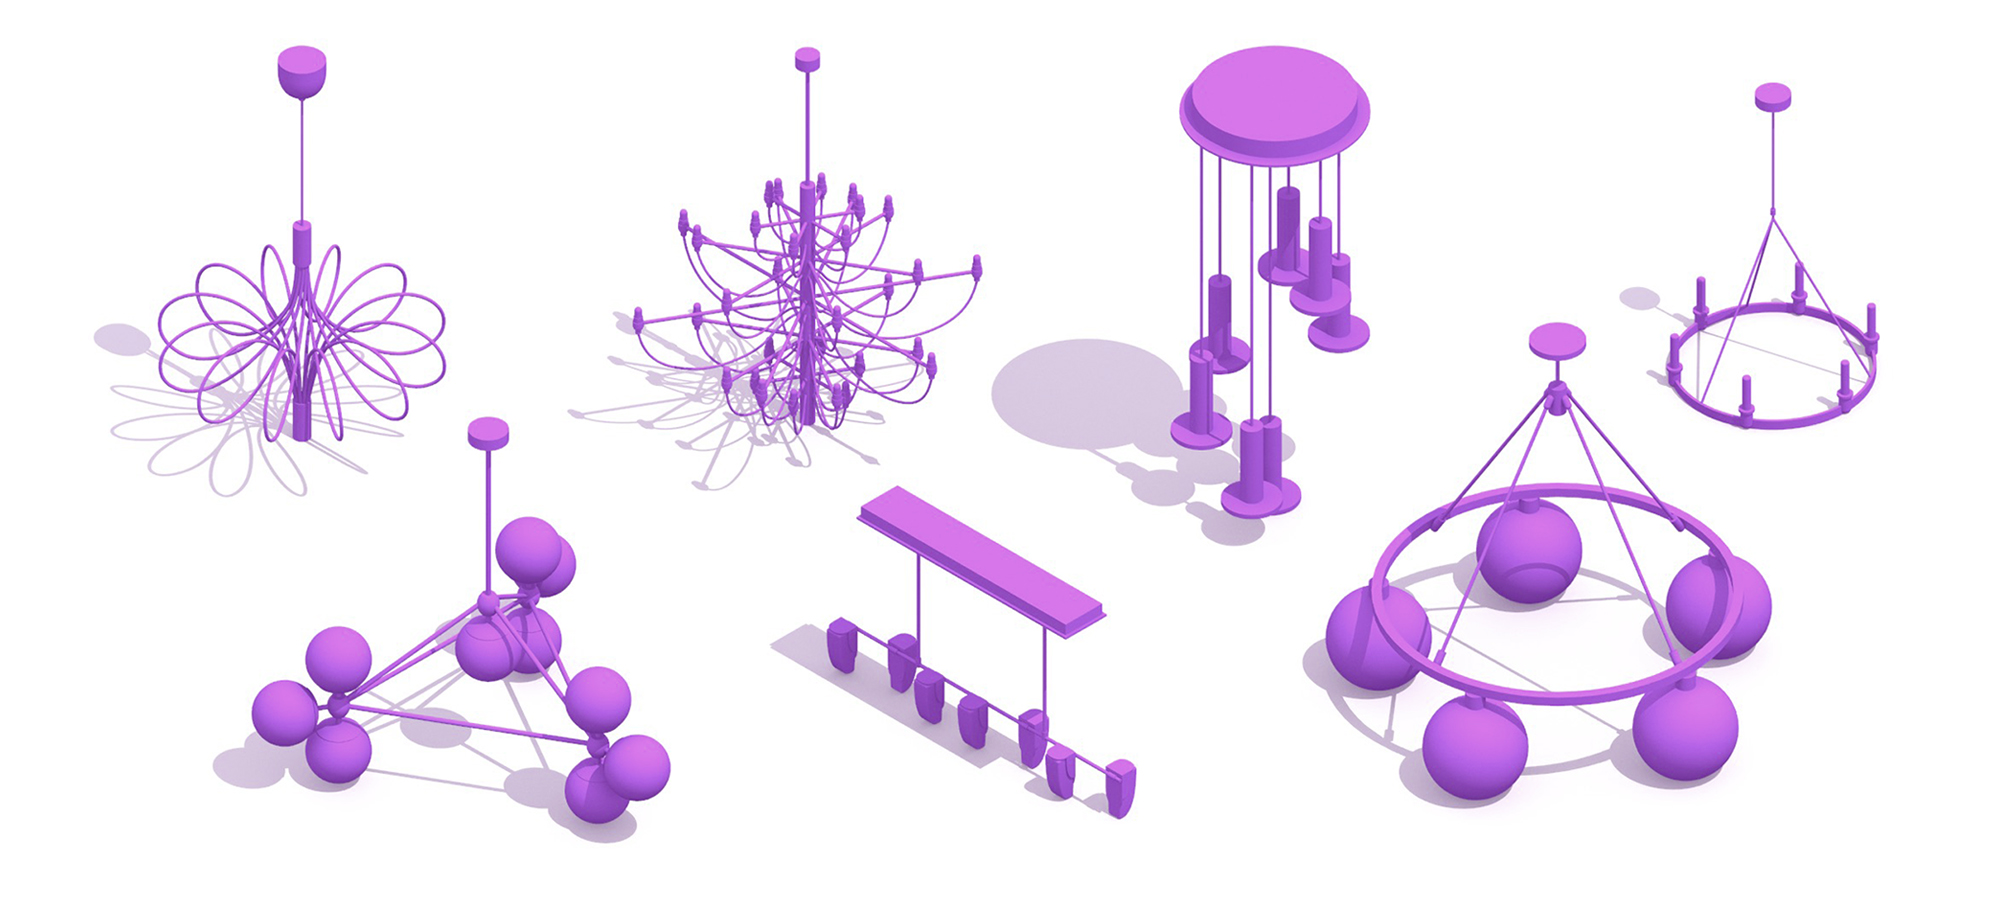 Assorted collection of unique chandelier designs, styles, sizes, and uses viewed in 3D